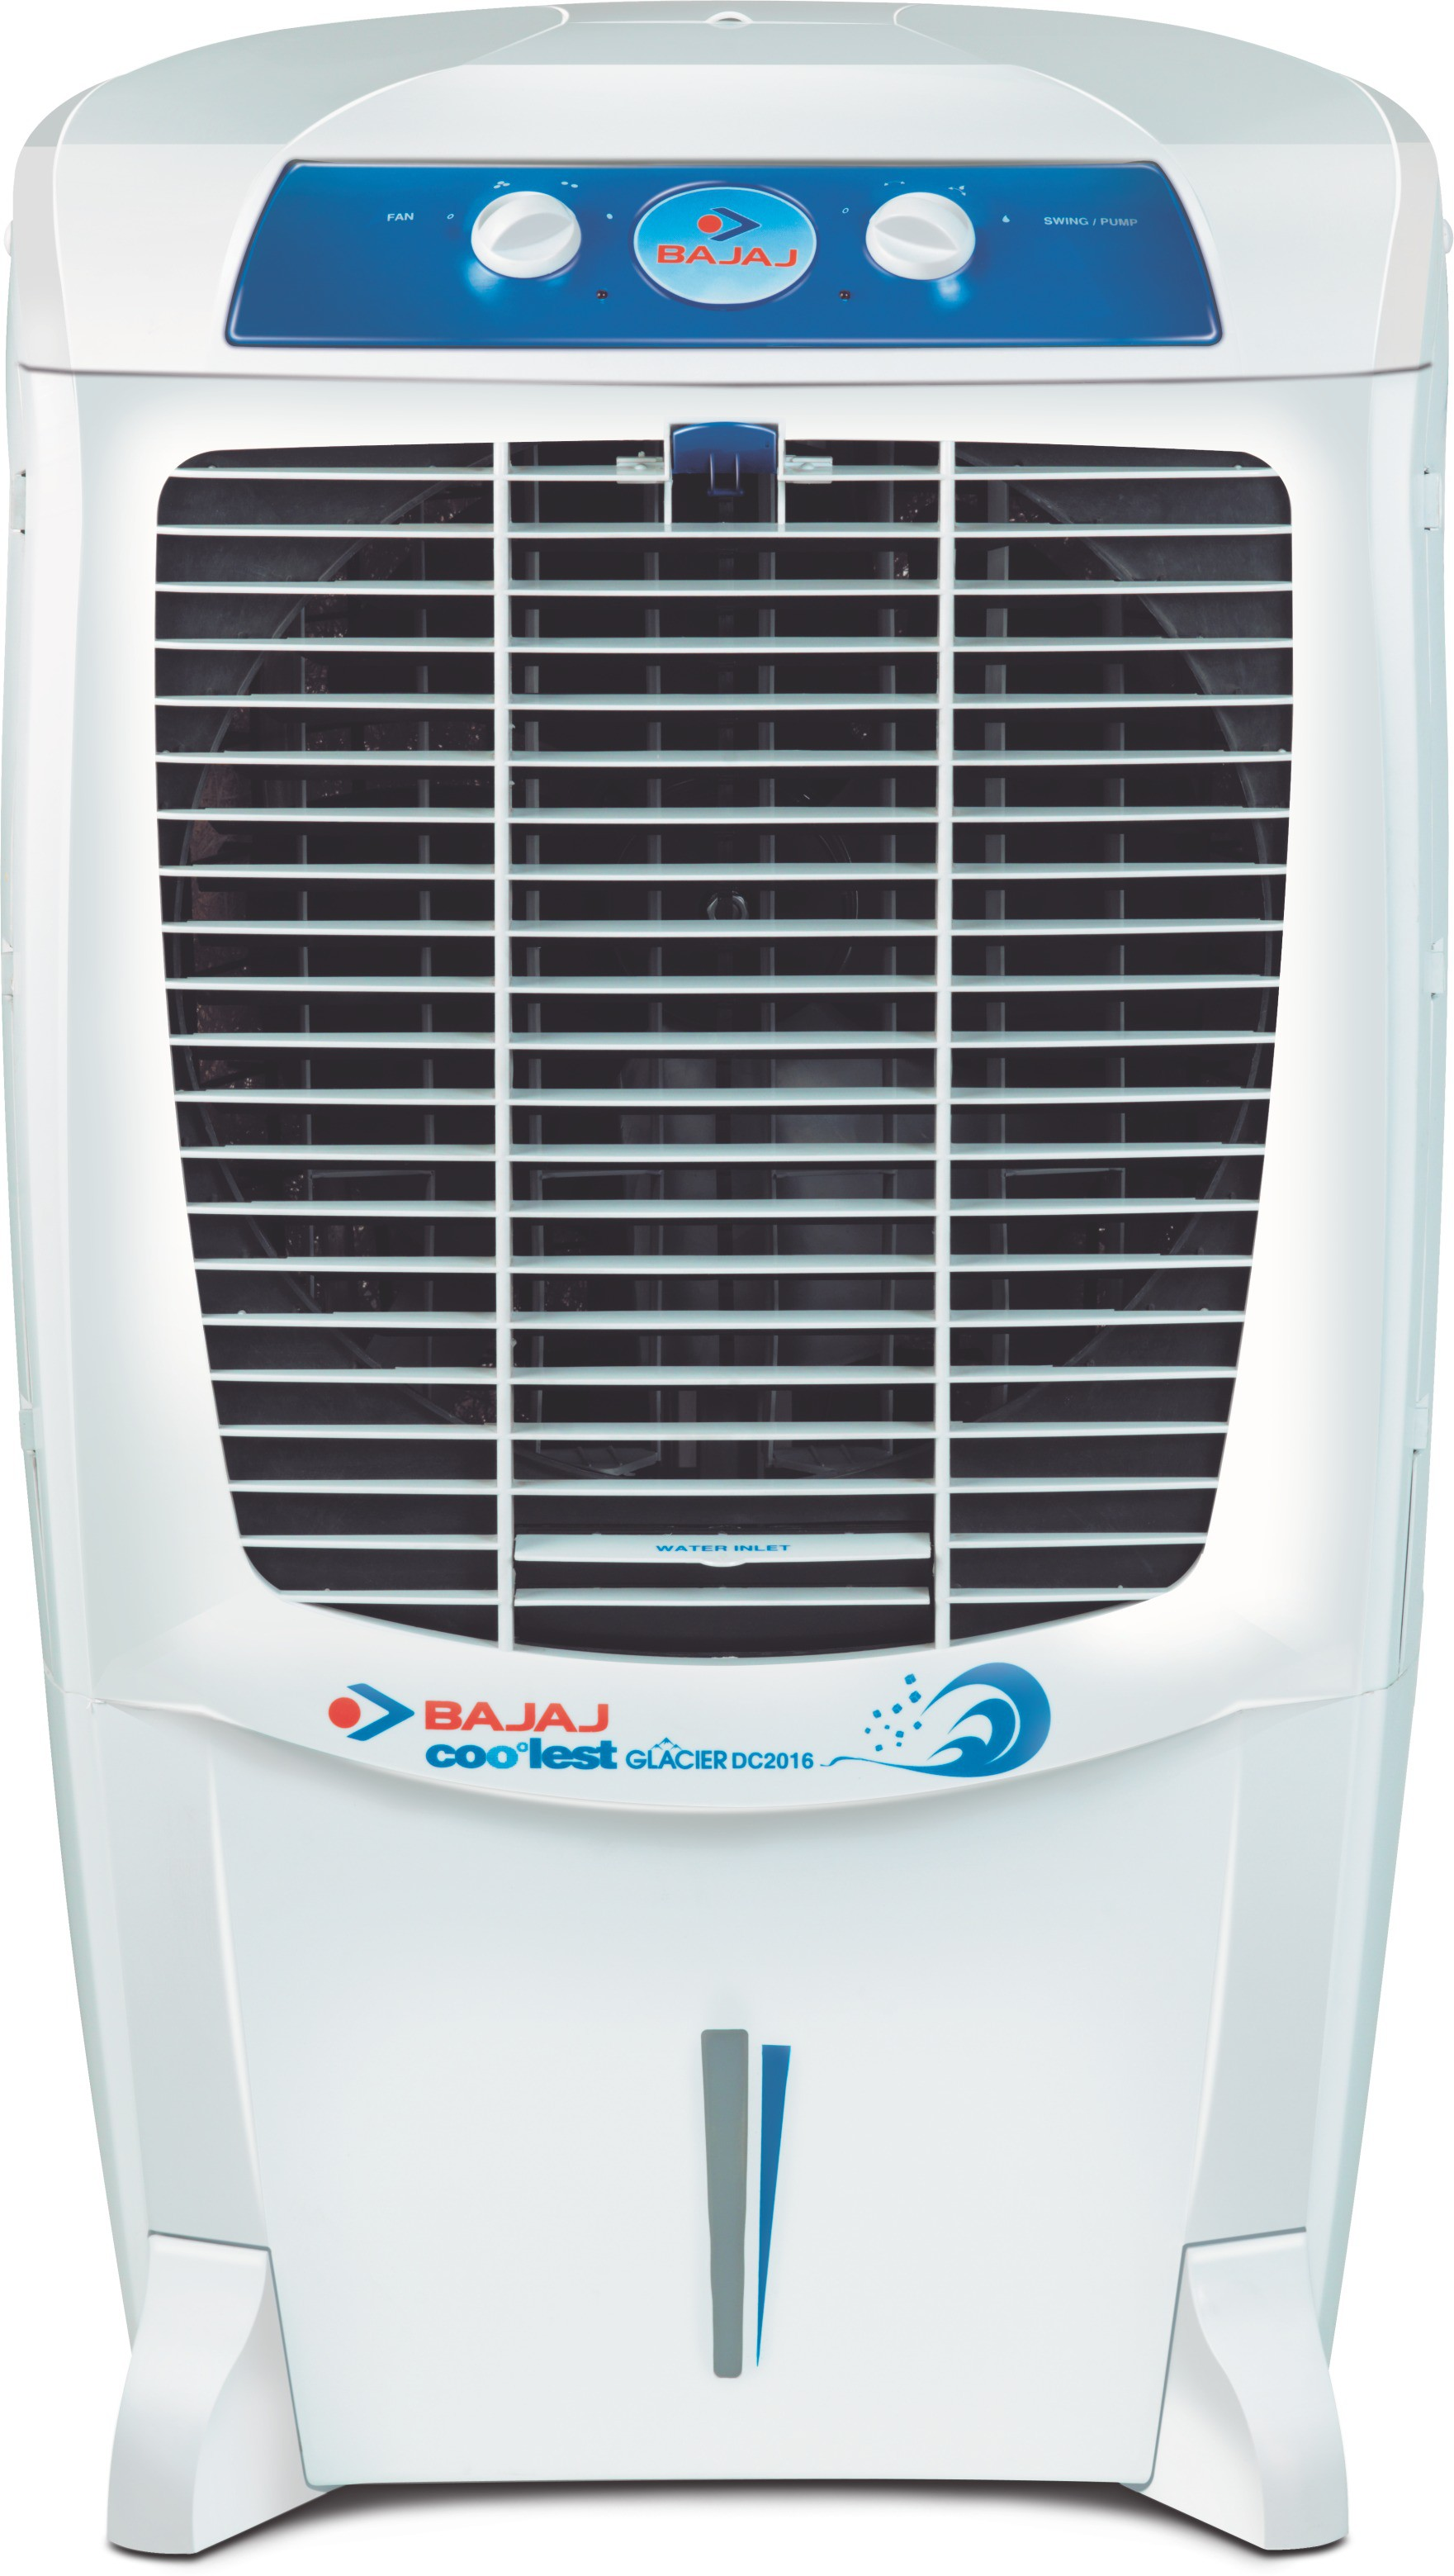 Bajaj Glacier DC 2016 Desert Air Cooler(White, 67 Litres)   Air Cooler  (Bajaj)